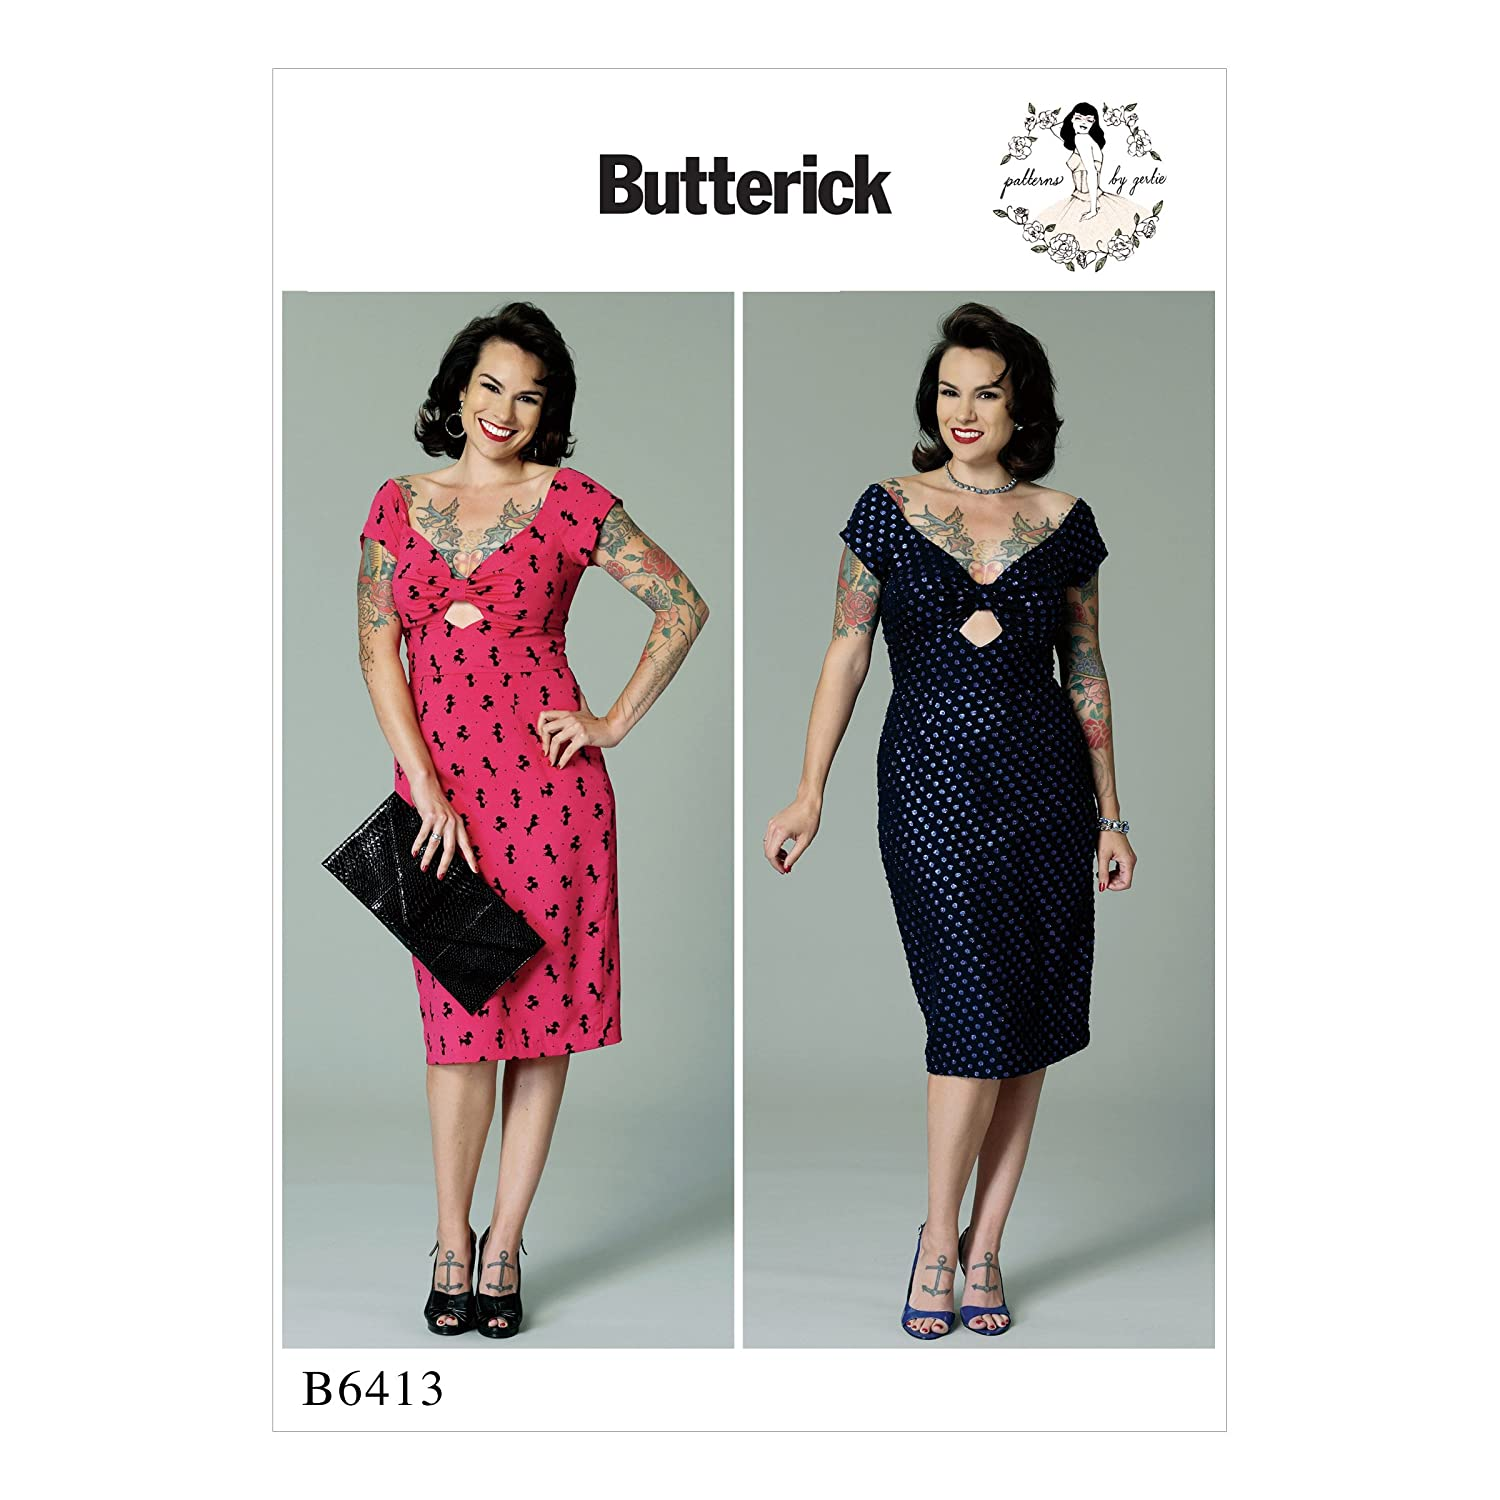 1950s Sewing Patterns | Swing and Wiggle Dresses, Skirts Butterick B6413 A5 Misses Gathered-Front Keyhole Dress Pattern by Gertie Size 6-8-10-12-14 $13.51 AT vintagedancer.com